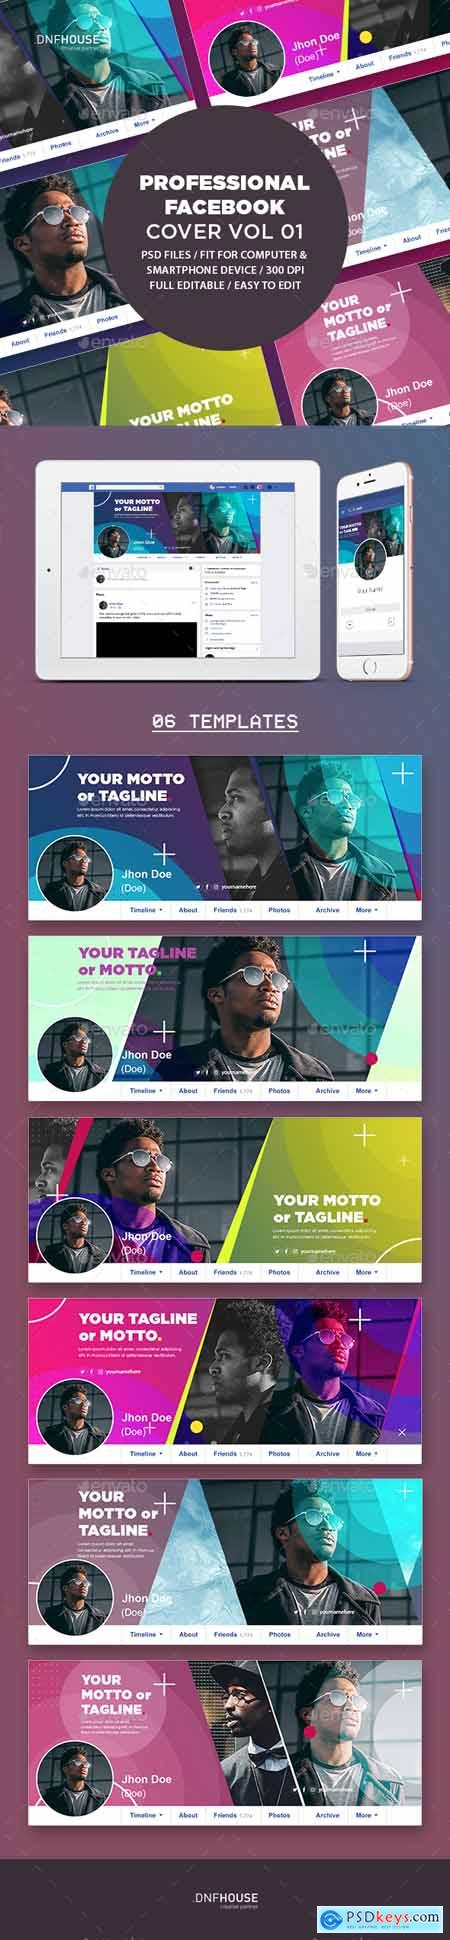 Graphicriver Professional Facebook Cover Vol 01